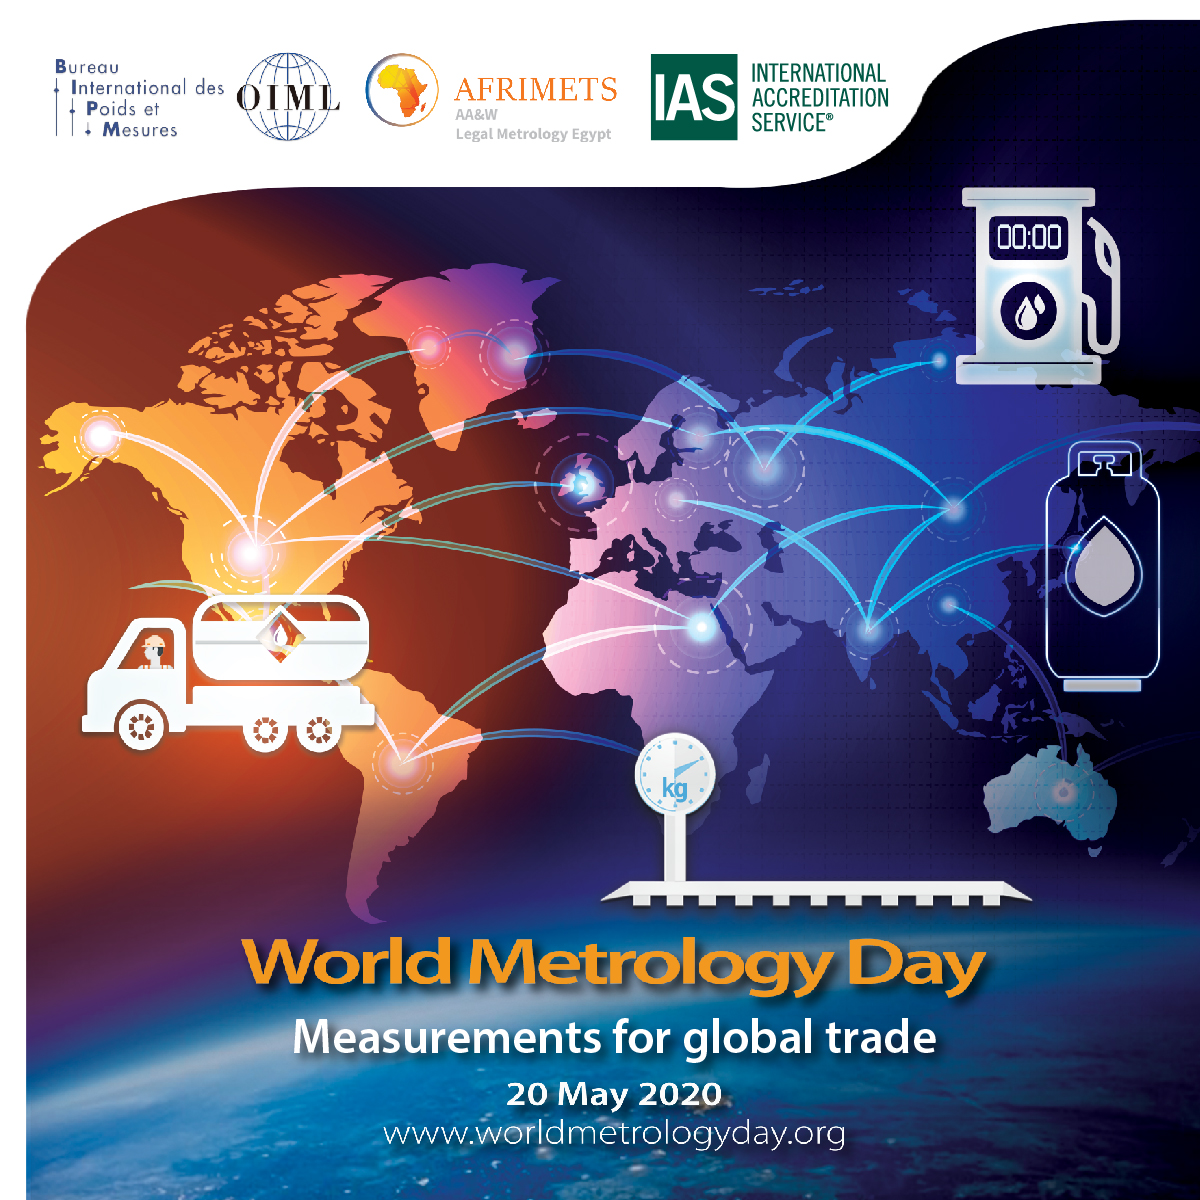 GLOBAL PANDEMIC UNDERSCORES MEASUREMENT ACCURACY IMPORTANCE ON WORLD METROLOGY DAY